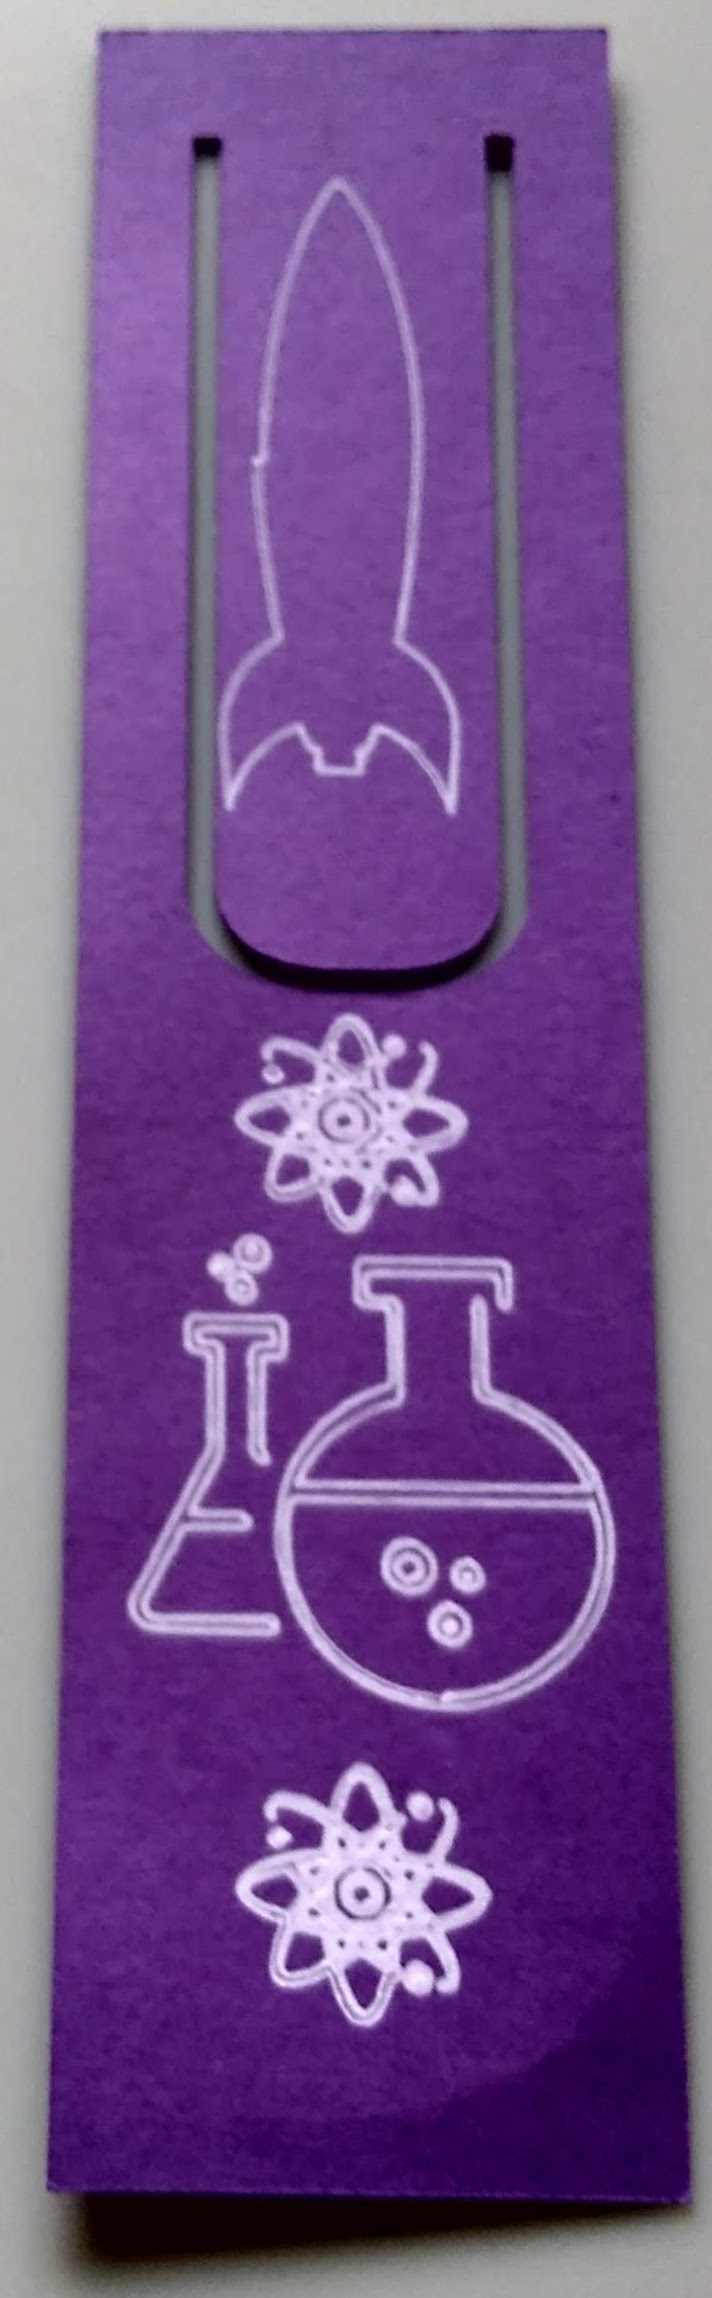 Large Bookmarks for Back to School